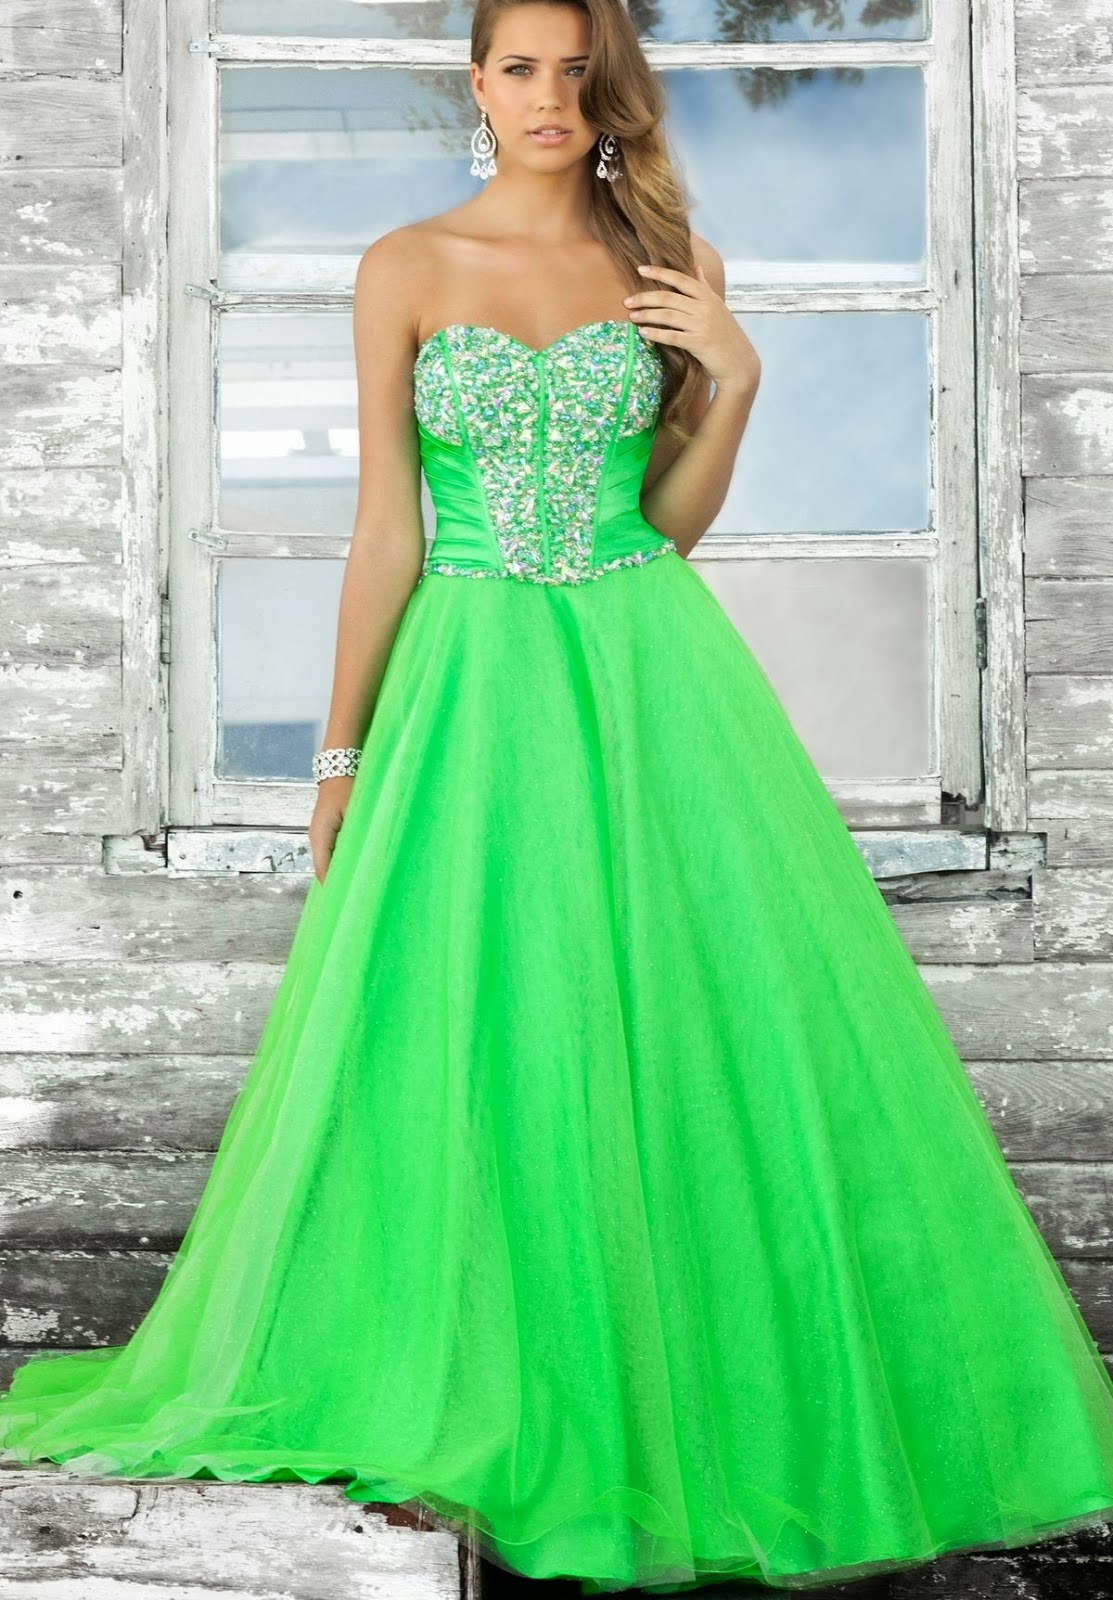 ball gowns Fayetteville